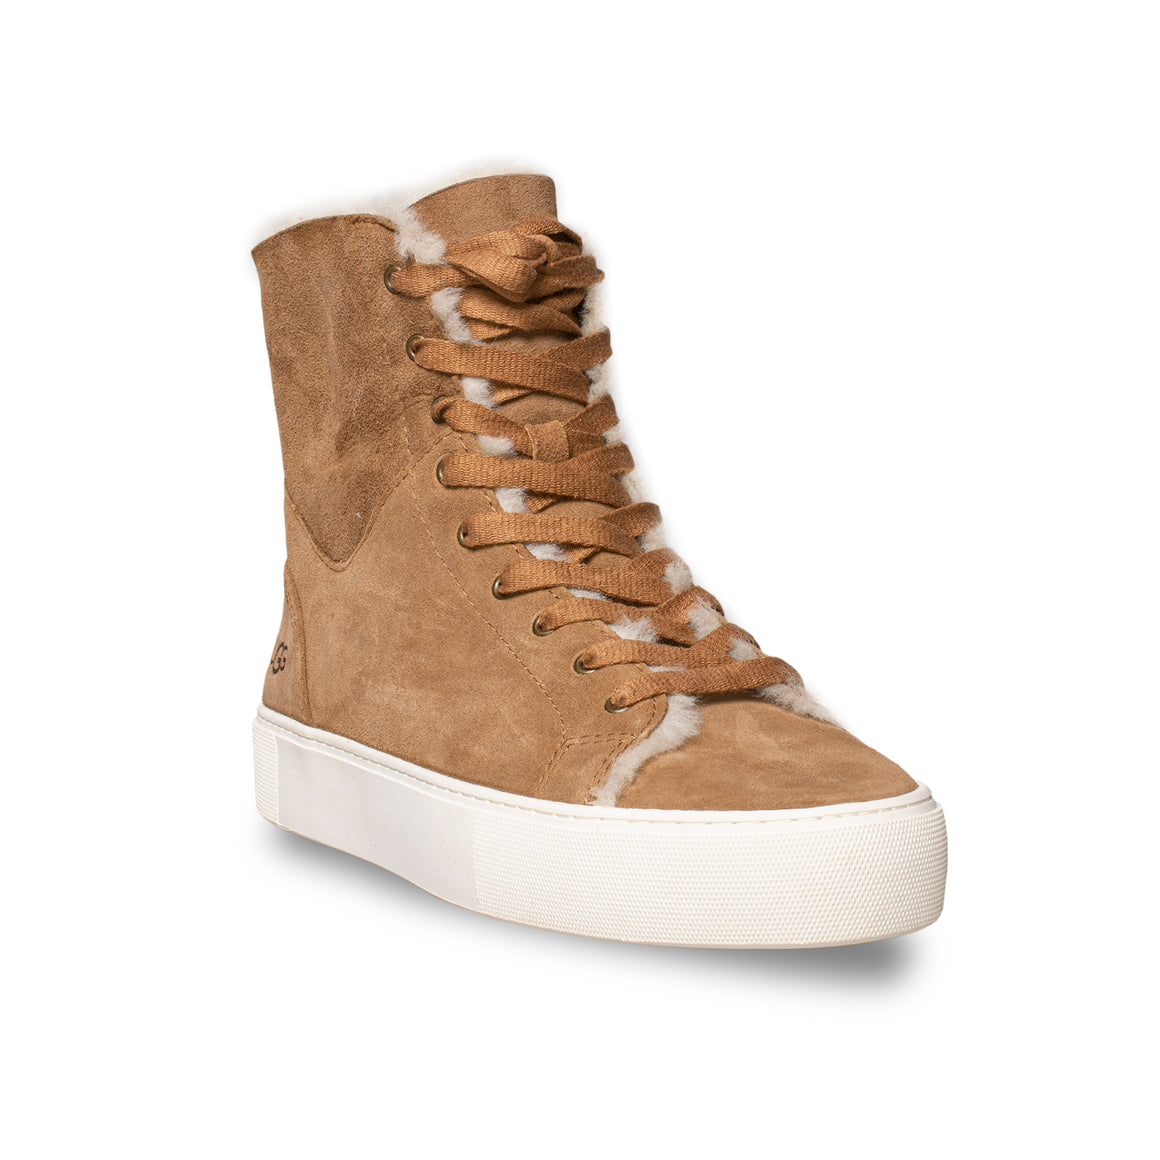 UGG Beven Chestnut Sneakers - Women's